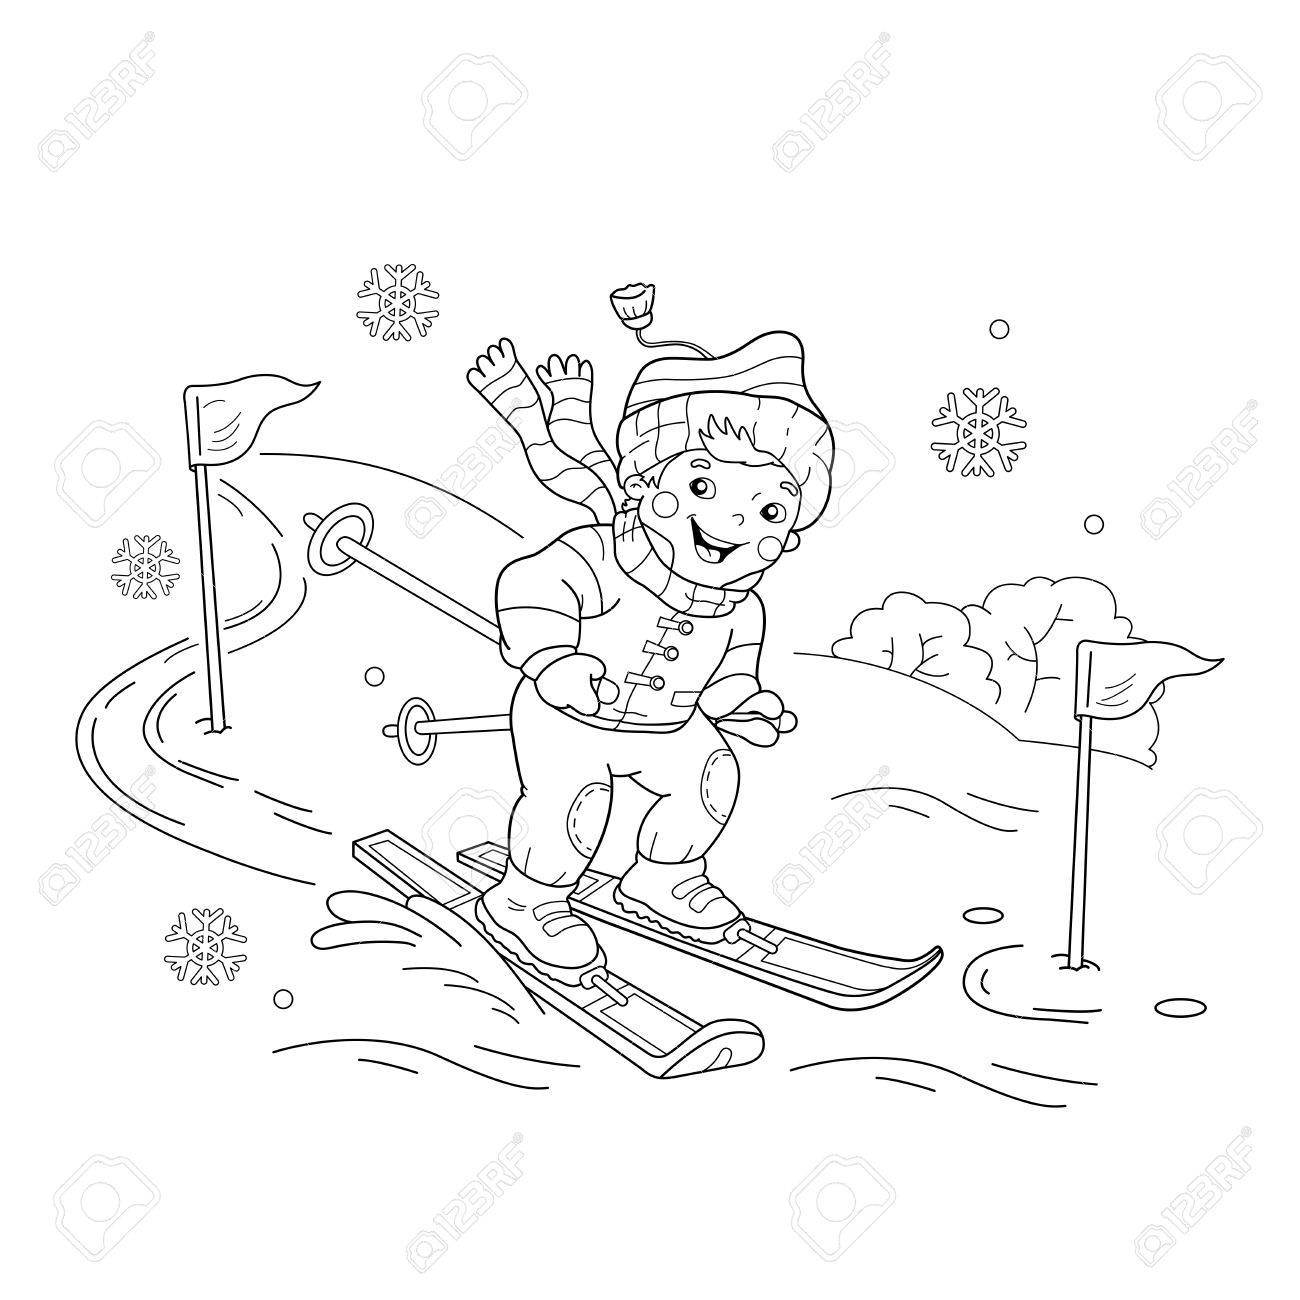 coloring page outline of boy riding on skis winter sports coloring book for kids - Sports Coloring Book